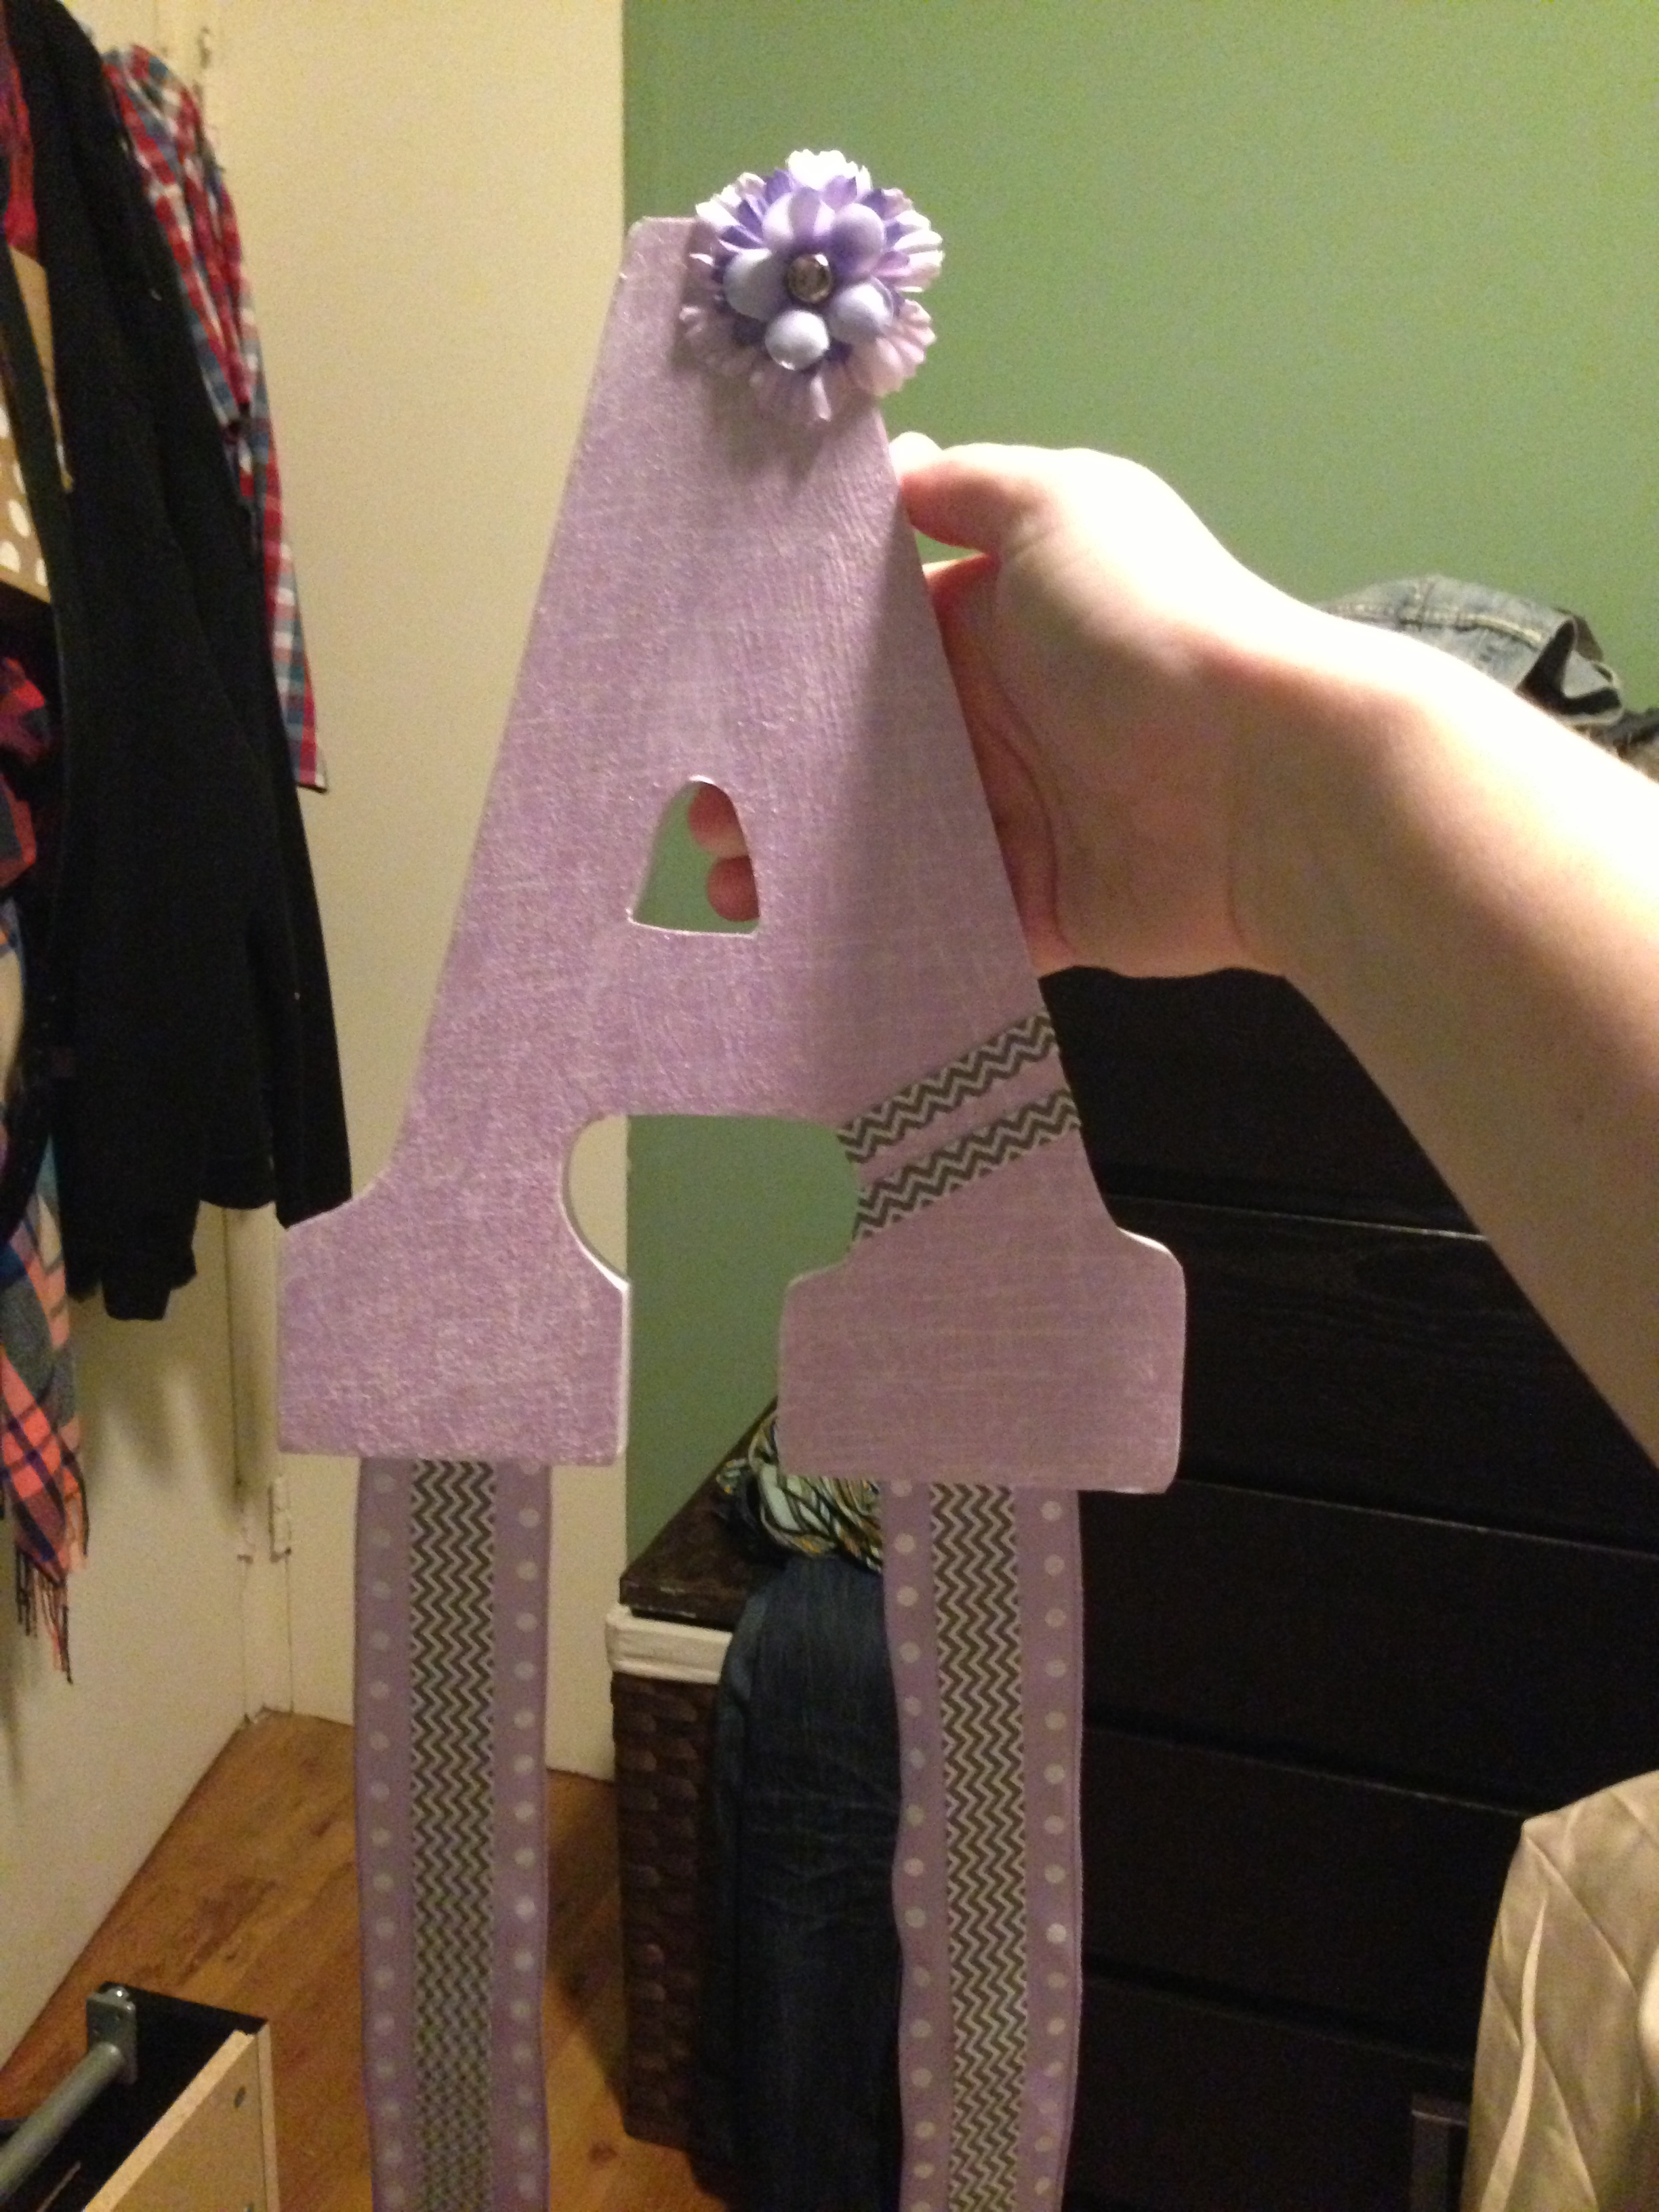 Bow holder for the princess!